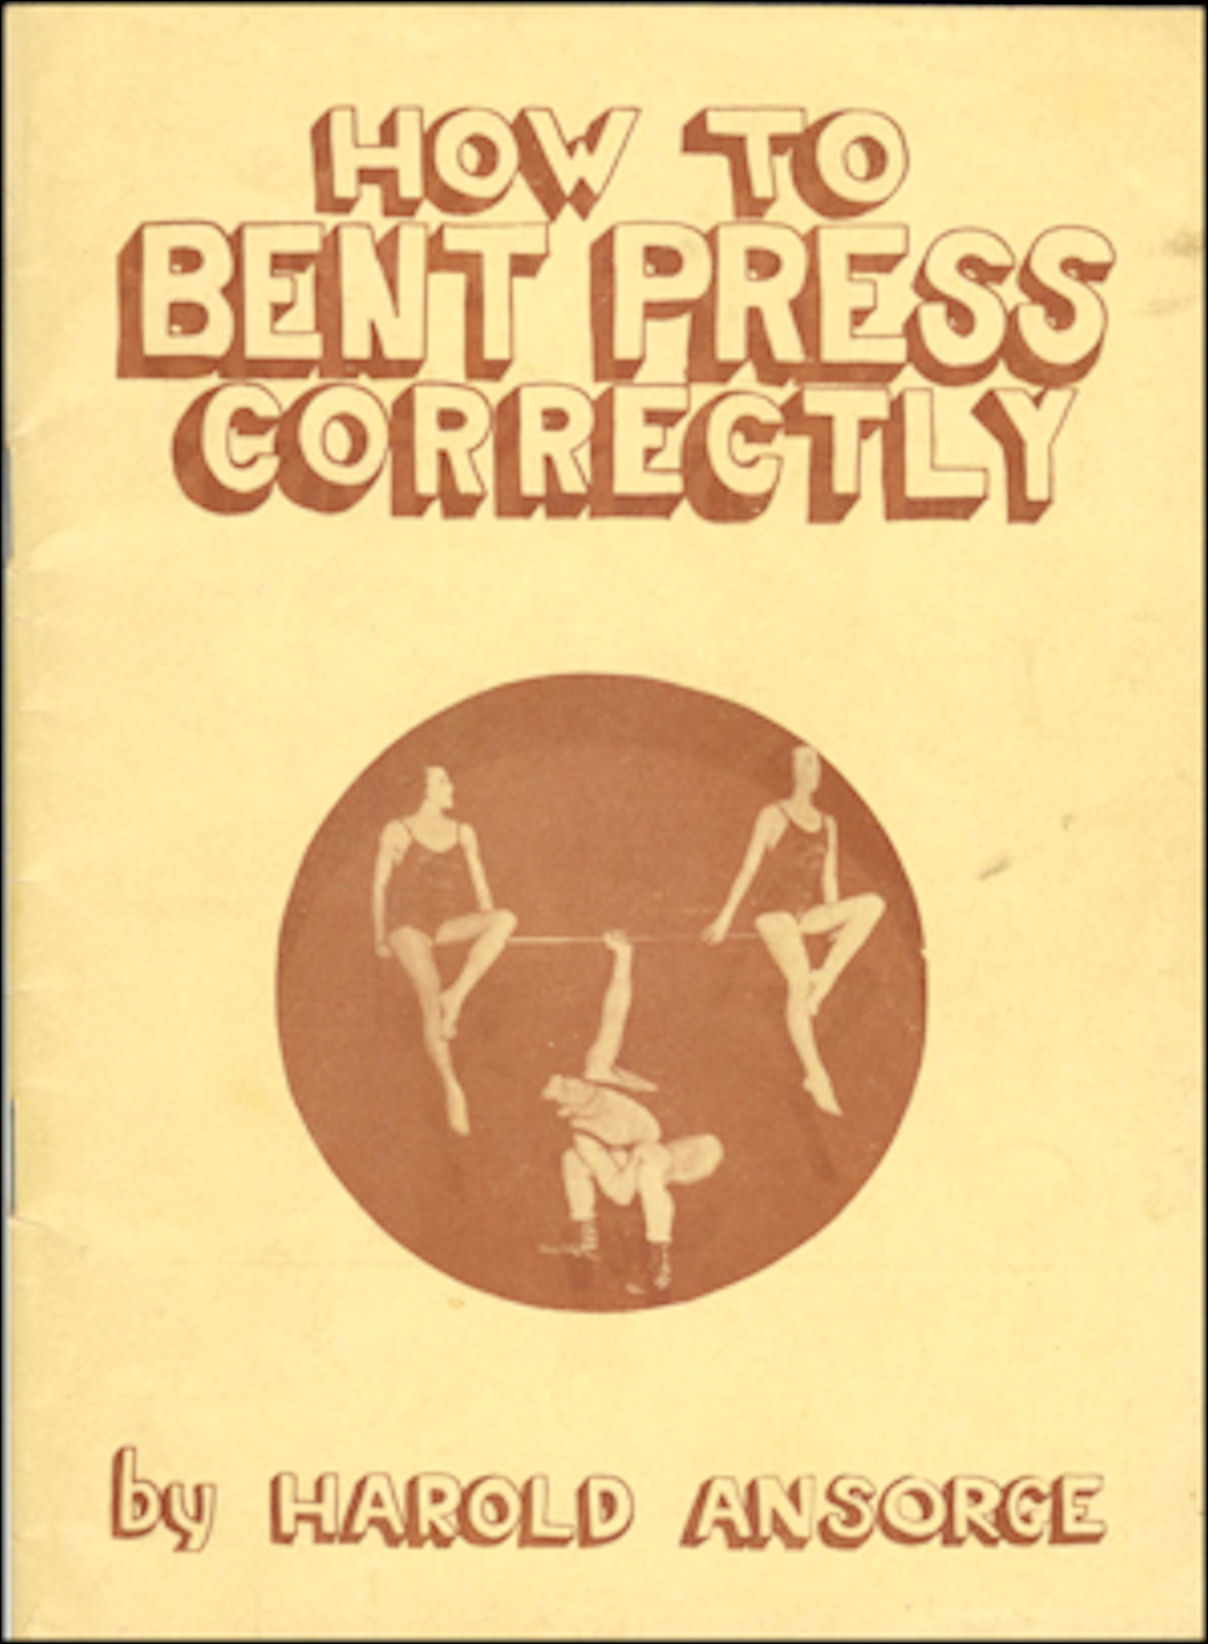 How to Bent Press Correctly by Harold Ansorge